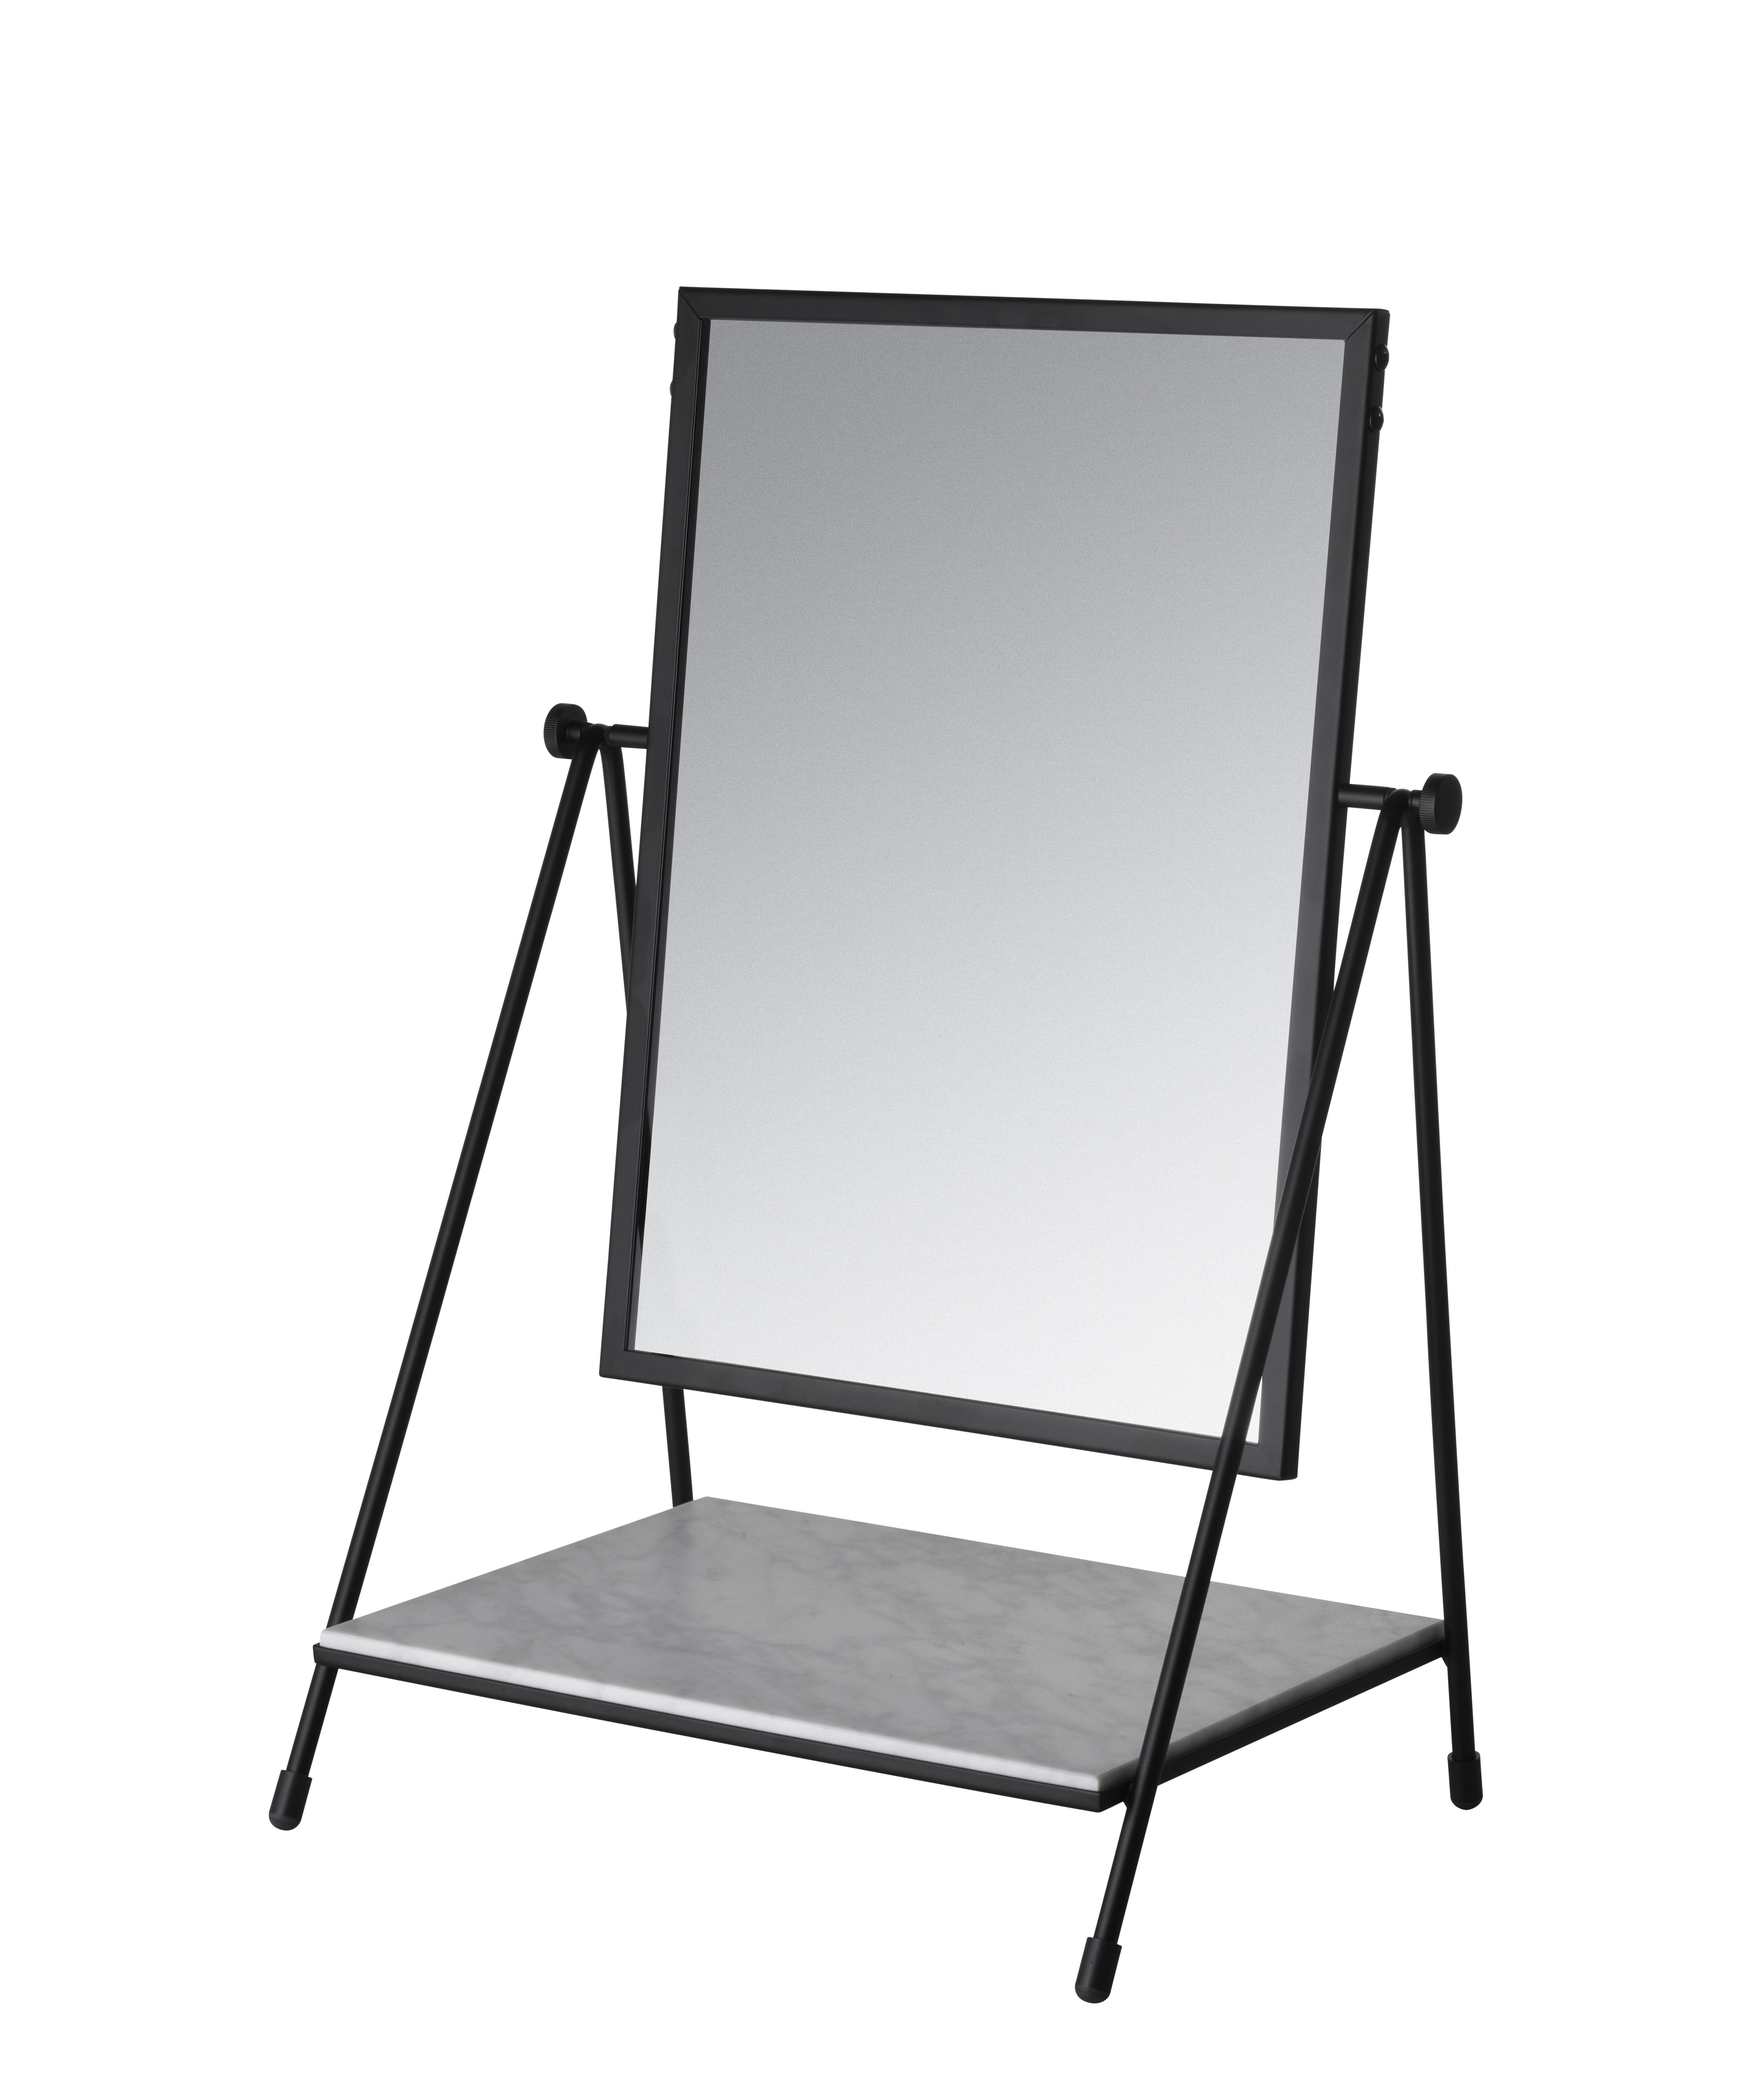 Decoration - Mirrors - Table Mirror Free standing mirrors - / 50s reissue - Marble & steel by Fritz Hansen - Black / White marble - Glass, Marble, Painted steel